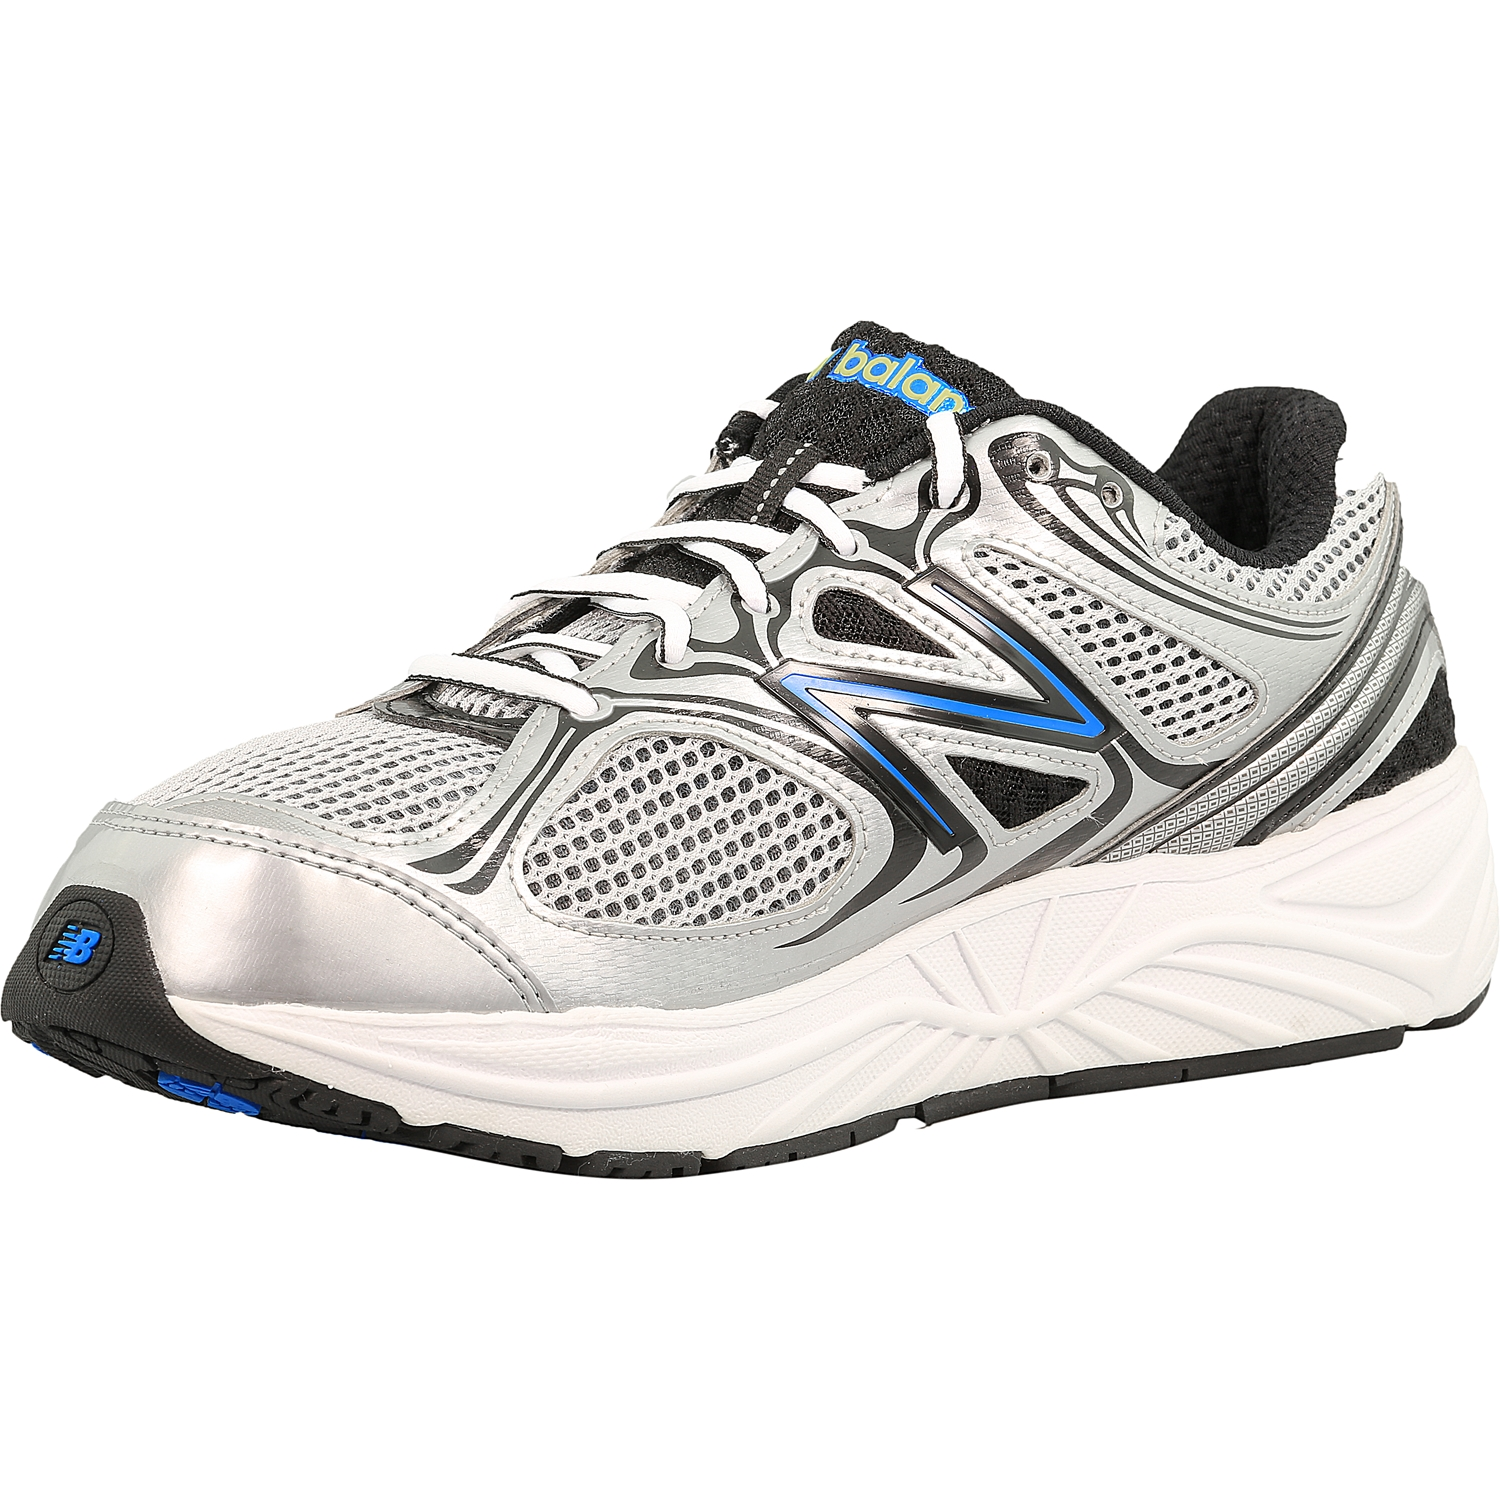 New Balance Men's M840 Sb2 Ankle-High Mesh Running Shoe -...